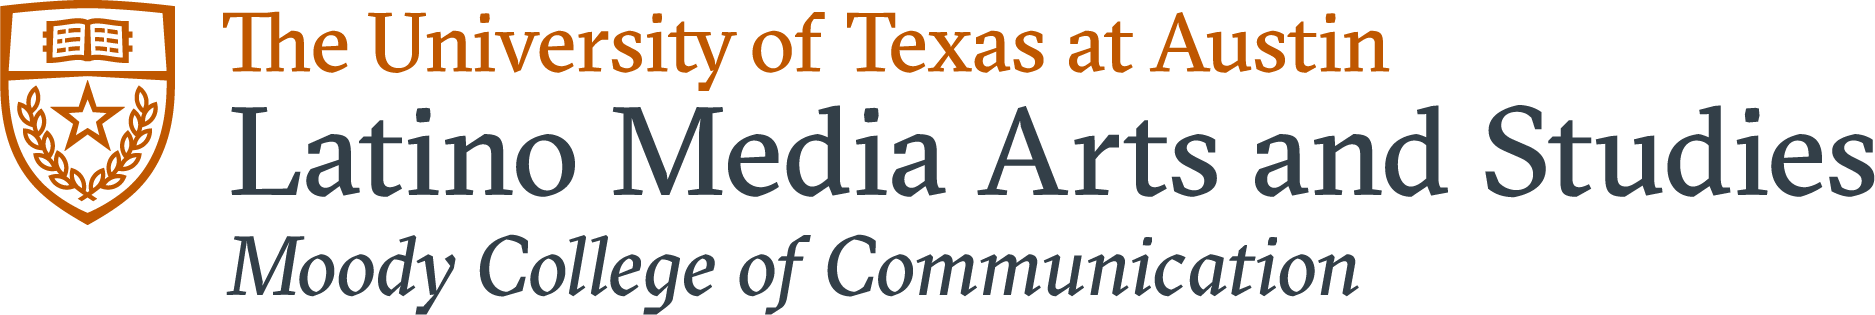 Latino Media Arts & Studies Program logo